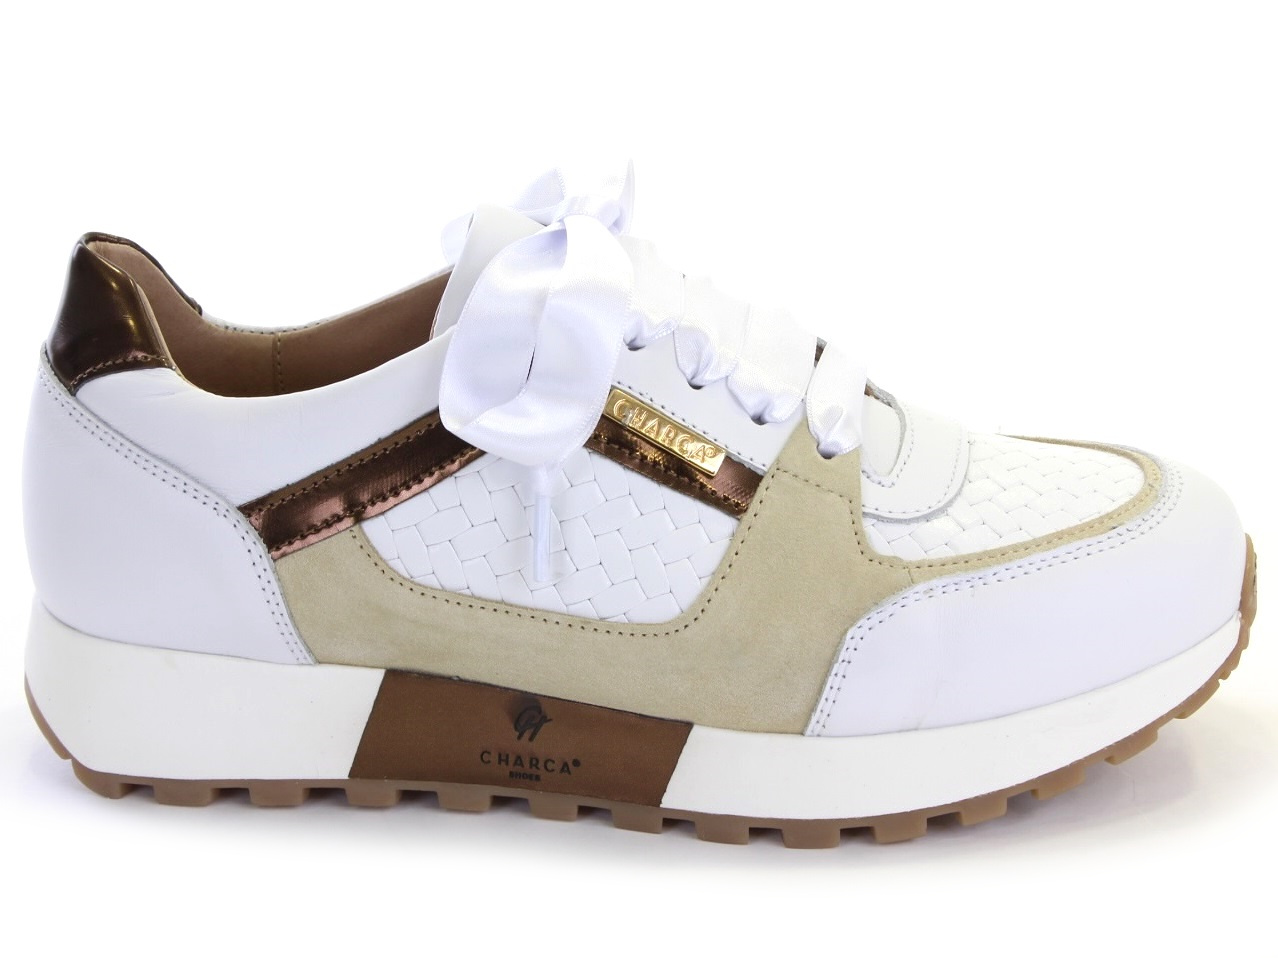 Sneakers and Espadrilles Charca - 427 2335